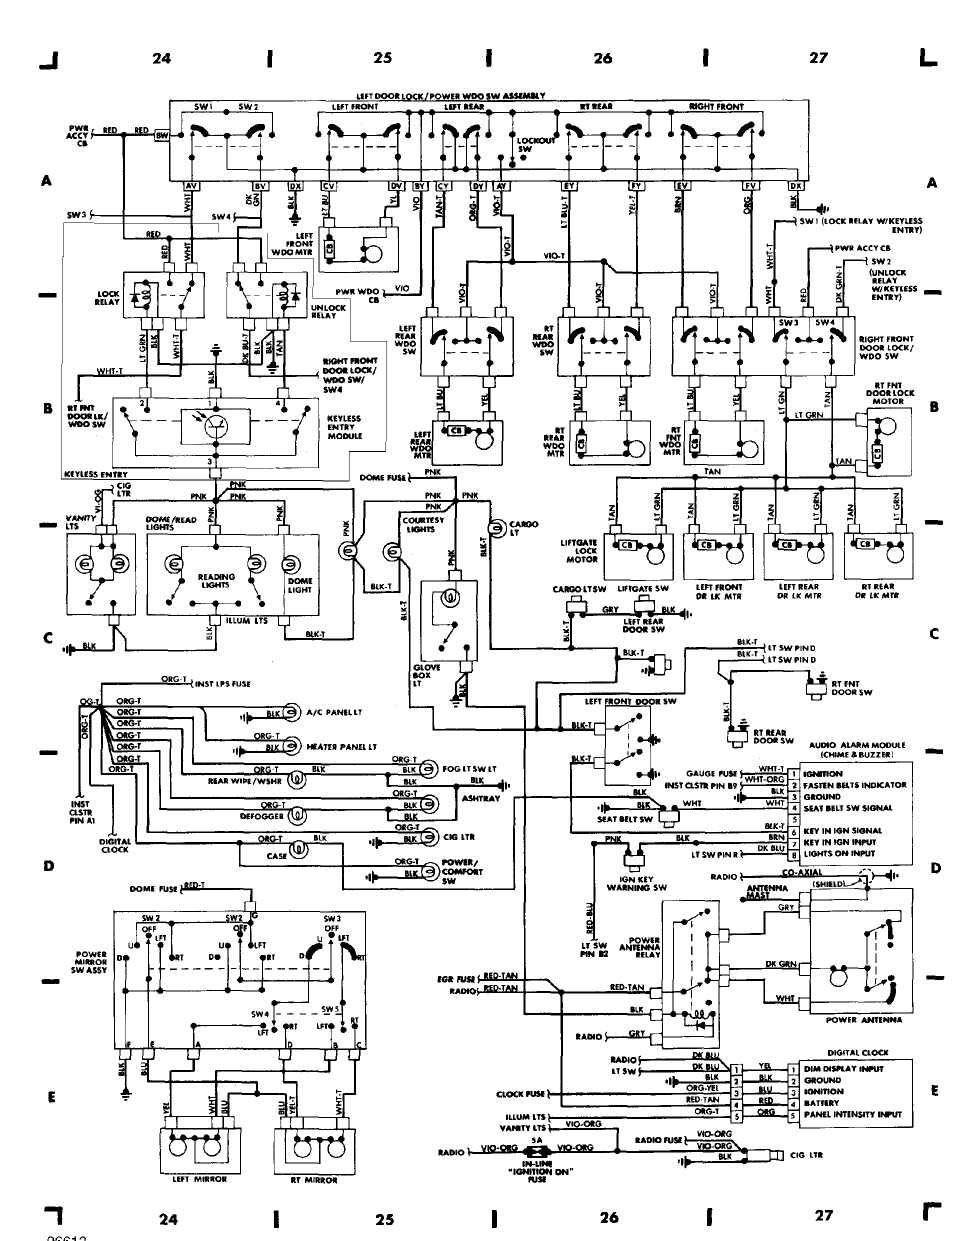 wiring_diagrams_html_61f5e0ad wiring diagrams 1984 1991 jeep cherokee (xj) jeep 1990 jeep cherokee fuse box diagram at edmiracle.co